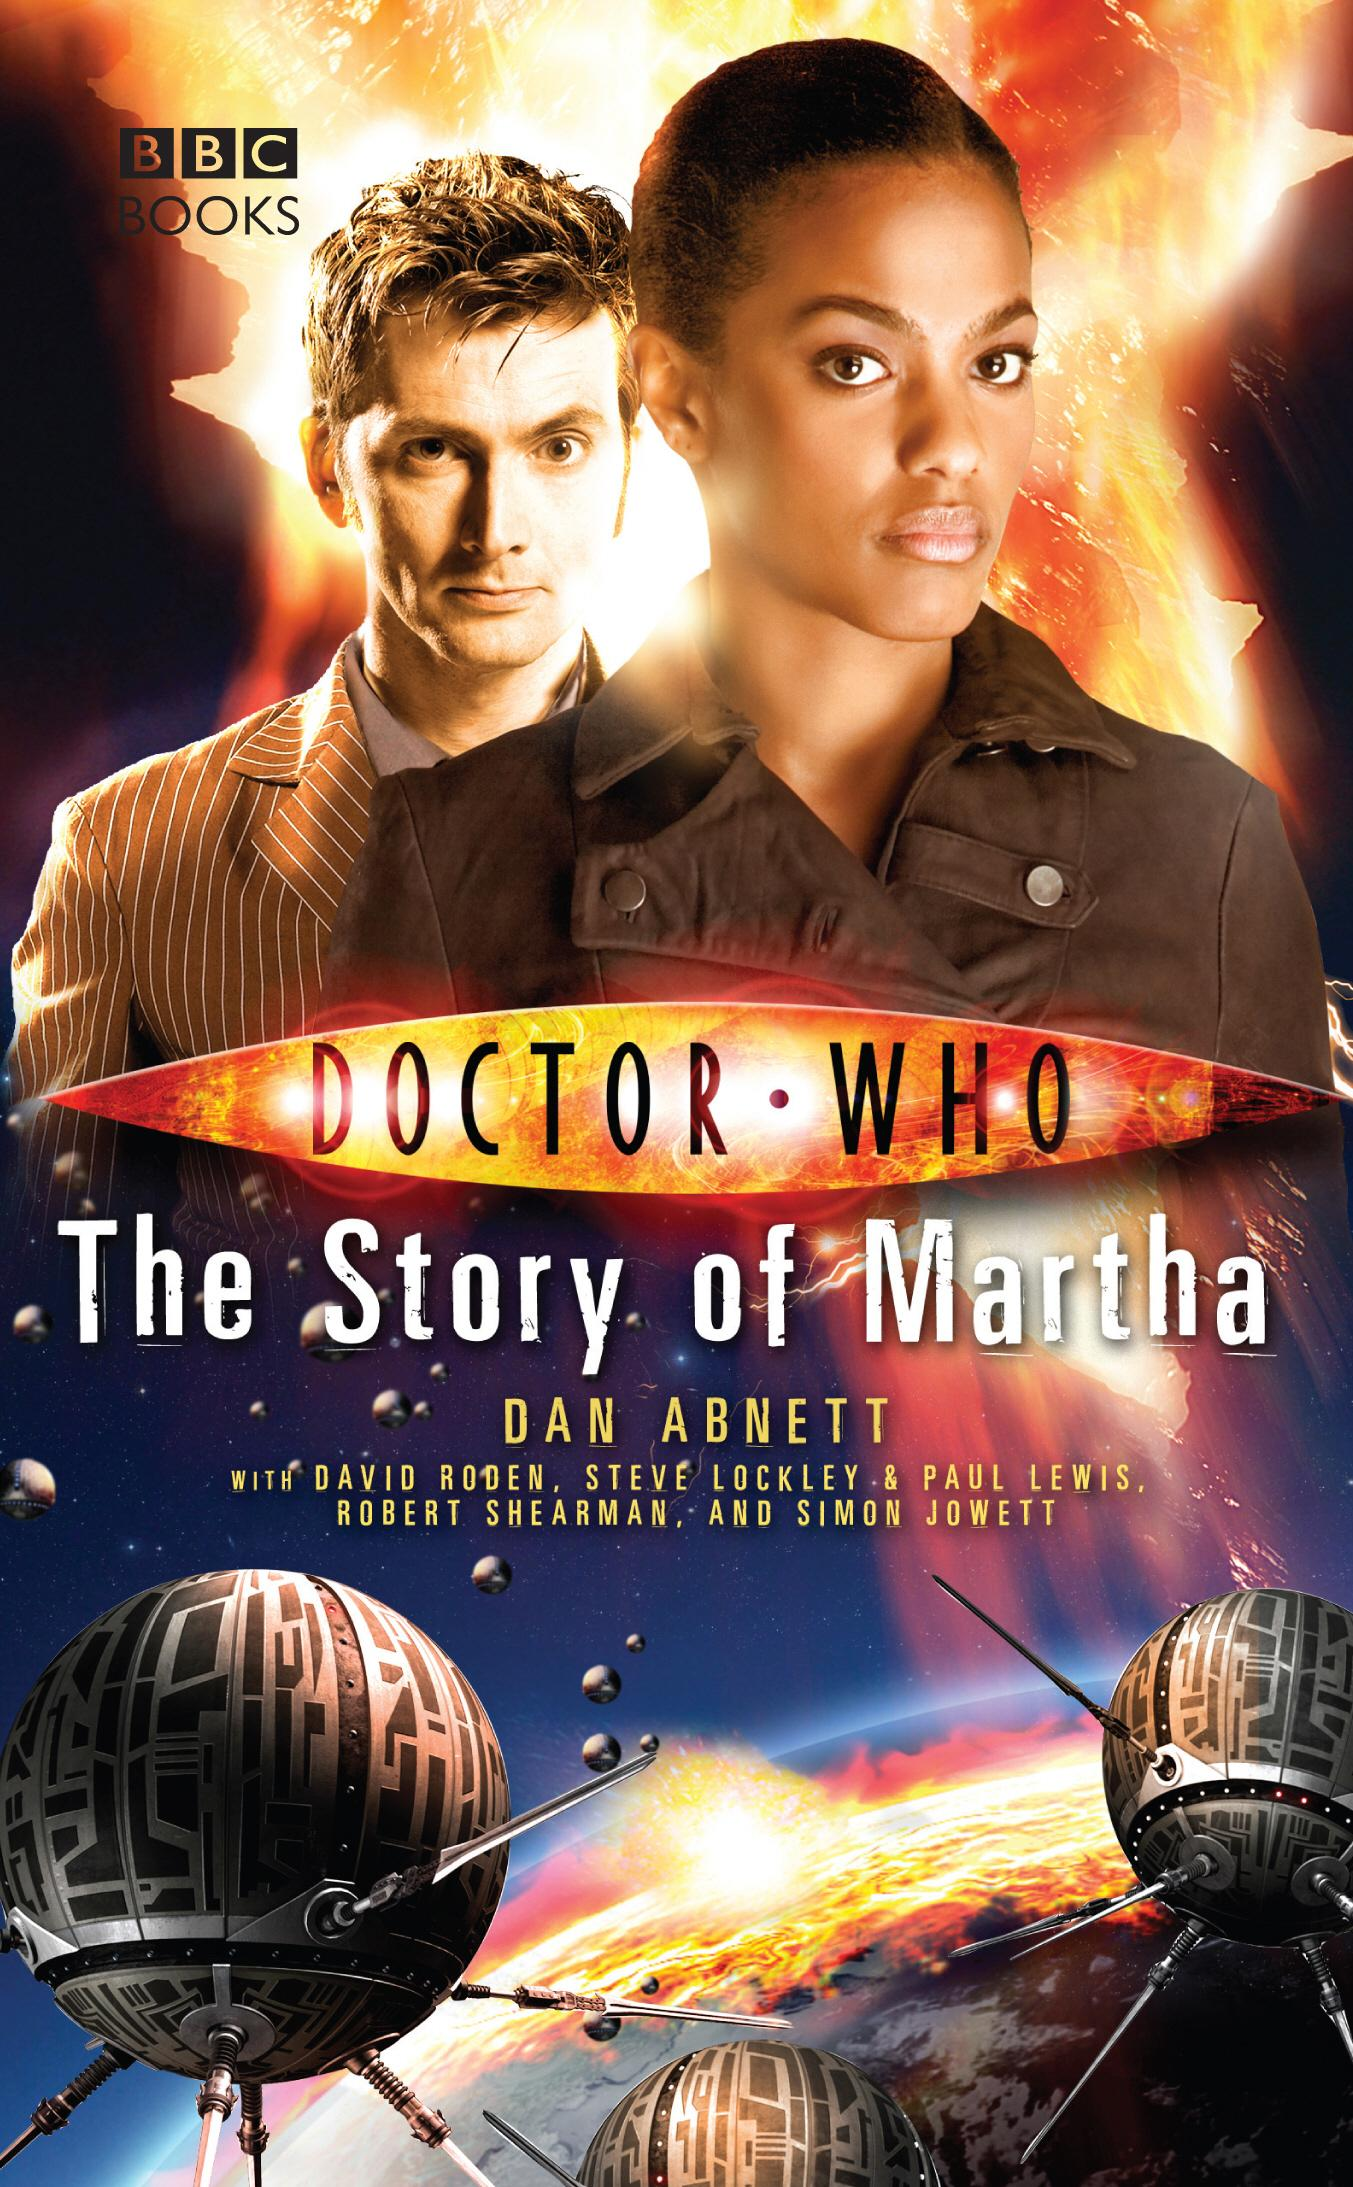 The Story of Martha